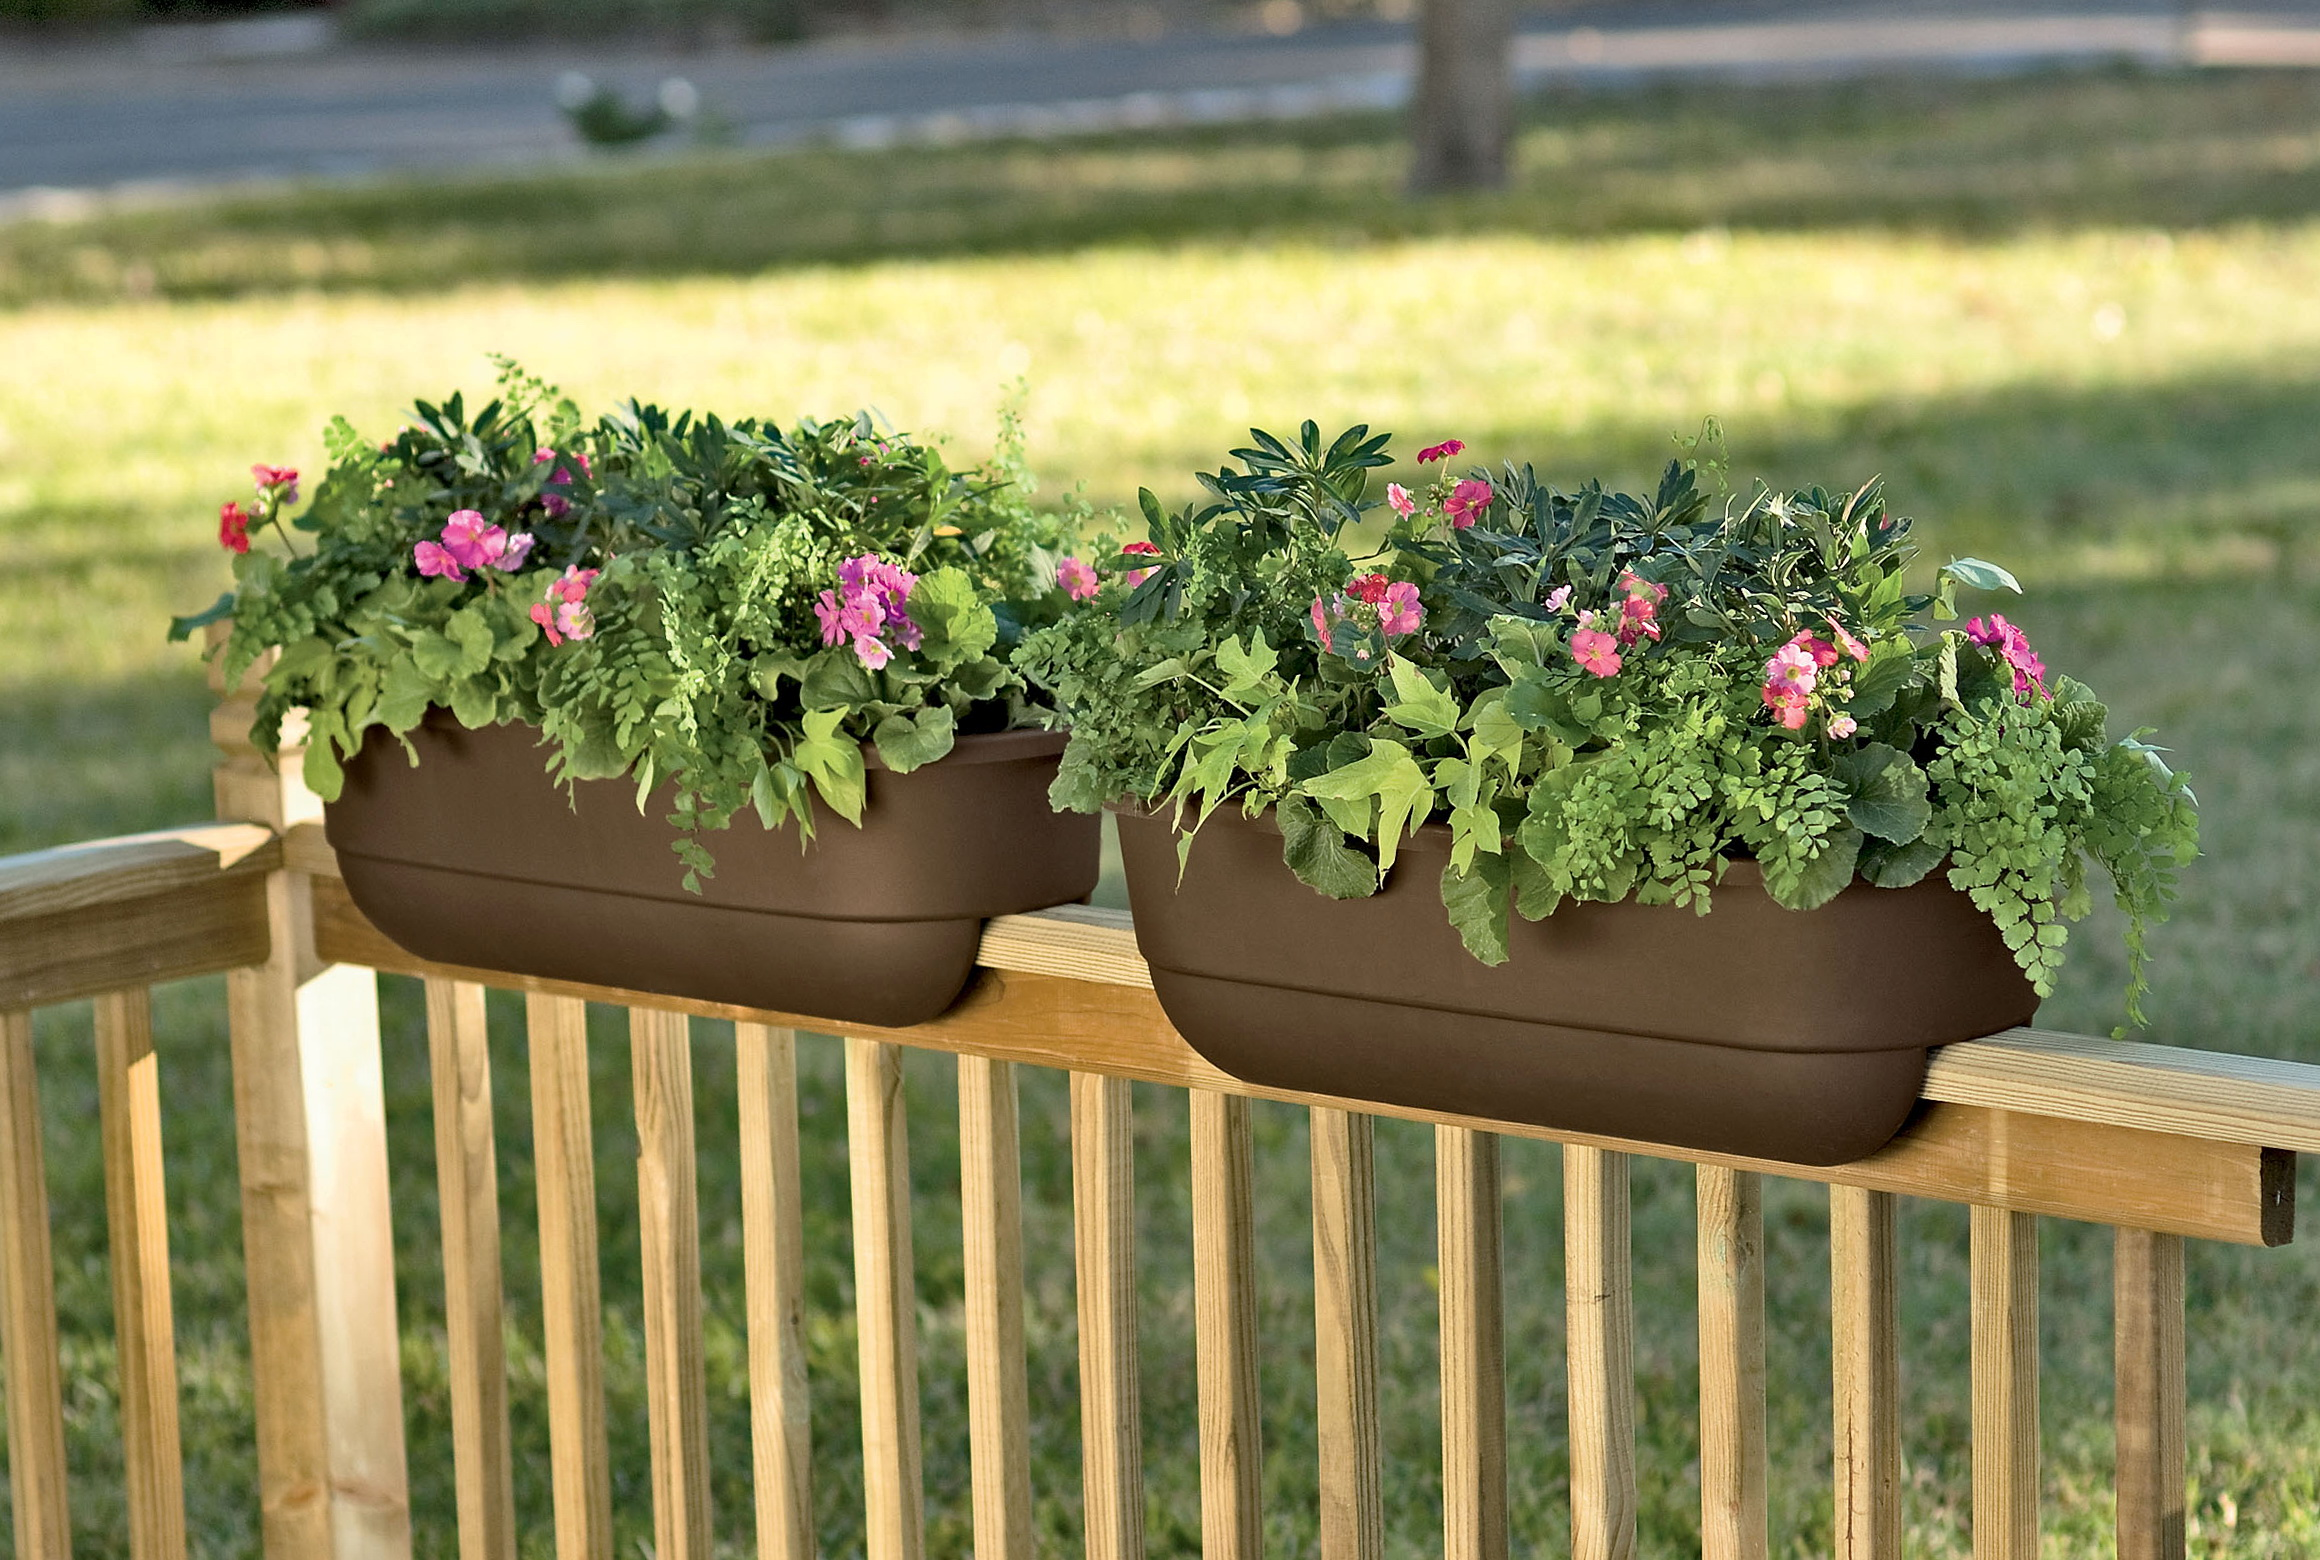 Deck railing planter ideas home design ideas - Deck rail planters lowes ...